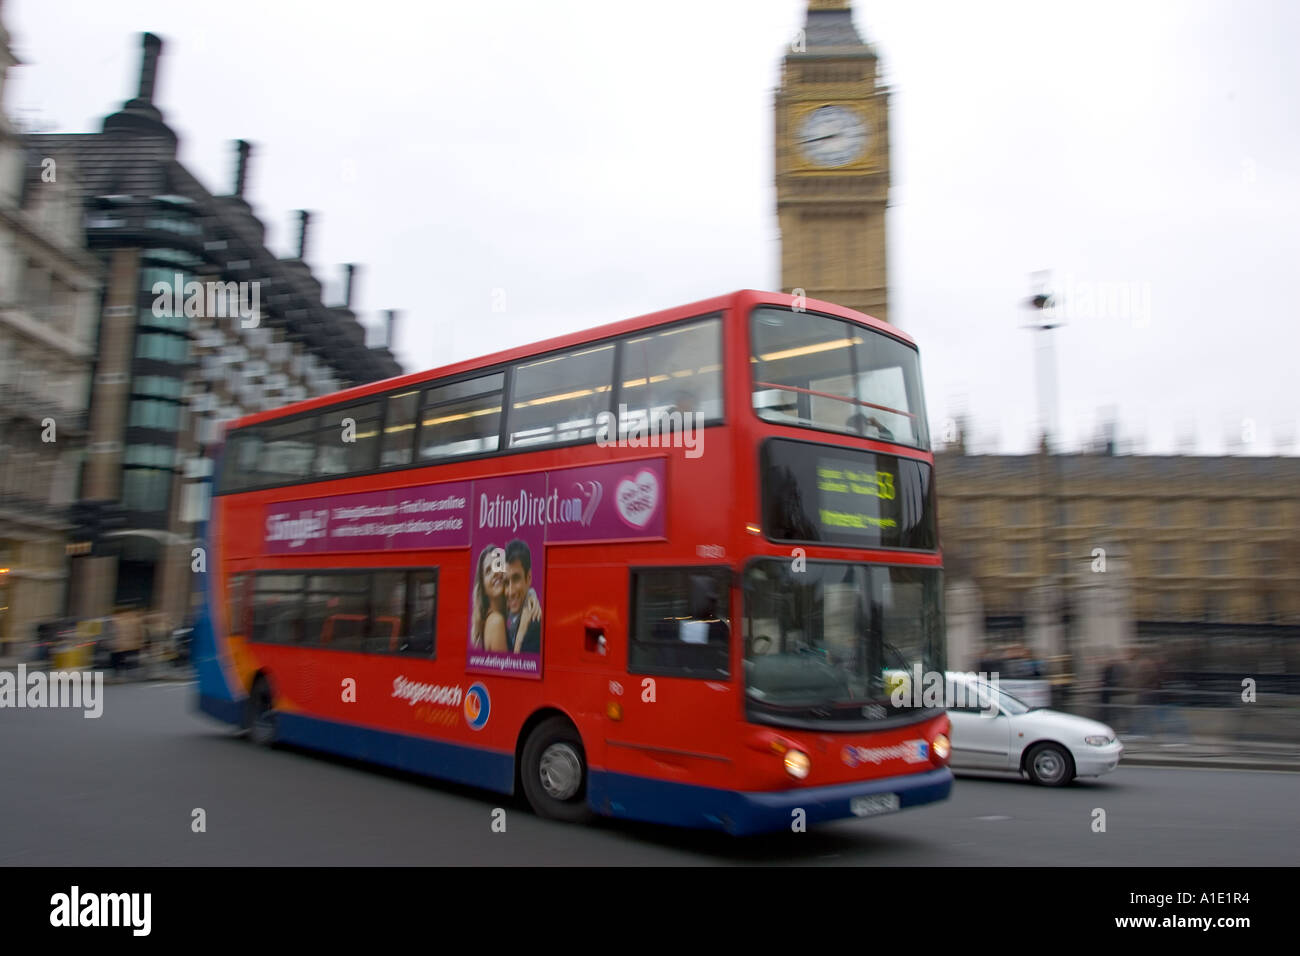 Red Double Decker Bus Parliament Square London United Kingdom - Stock Image